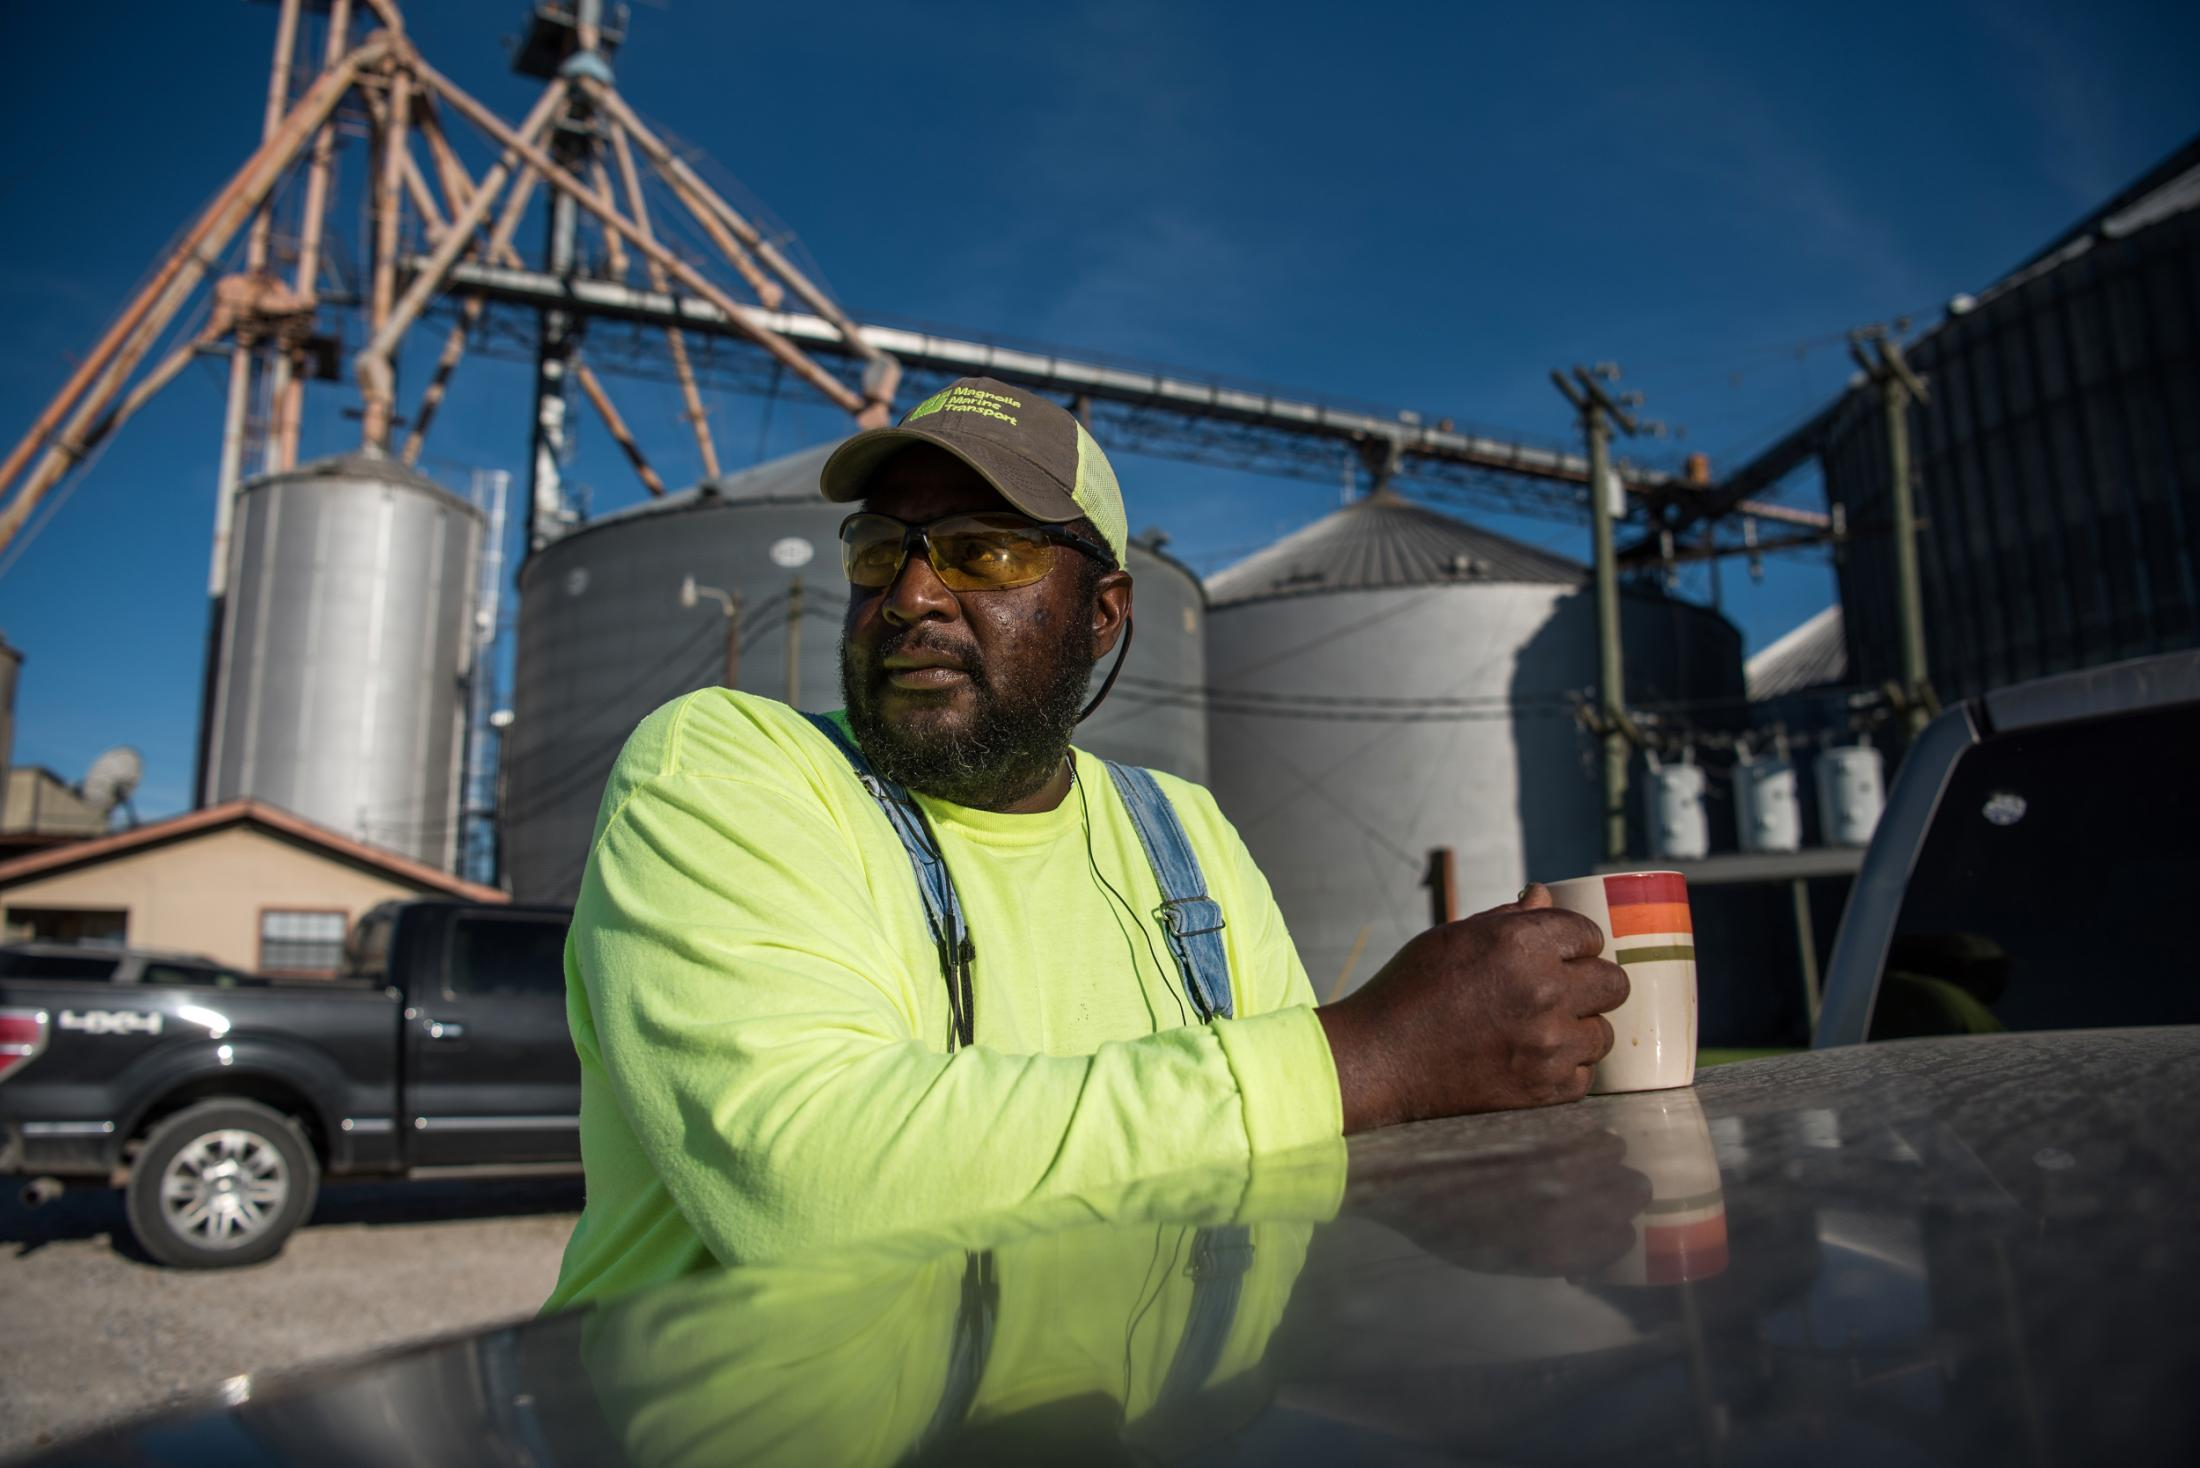 Roy DeFrance poses for a portrait outside of Valley Park Elvator, Inc. in Valley Park, Mississippi June 14, 2019. DeFrance has worked for the grain company since 1986 and is concerned about keeping his job with minimal product coming into the facility this year.